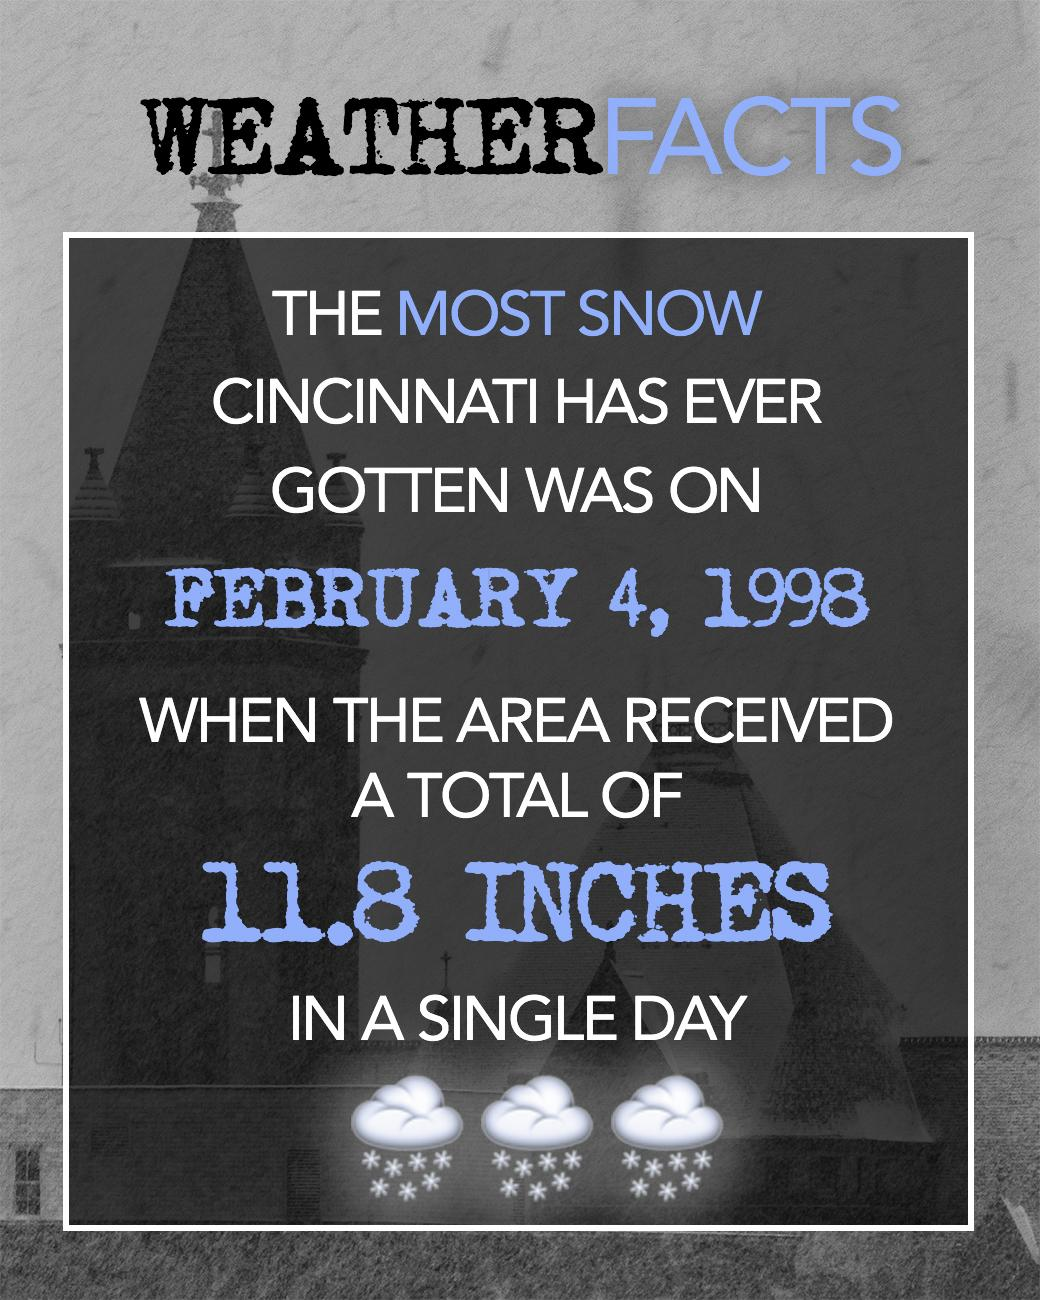 The most snow Cincinnati has ever gotten was on February 4, 1998, when the area received a total of 11.8 inches in a single day. / Image: Phil Armstrong, Cincinnati Refined // Published: 2.26.17